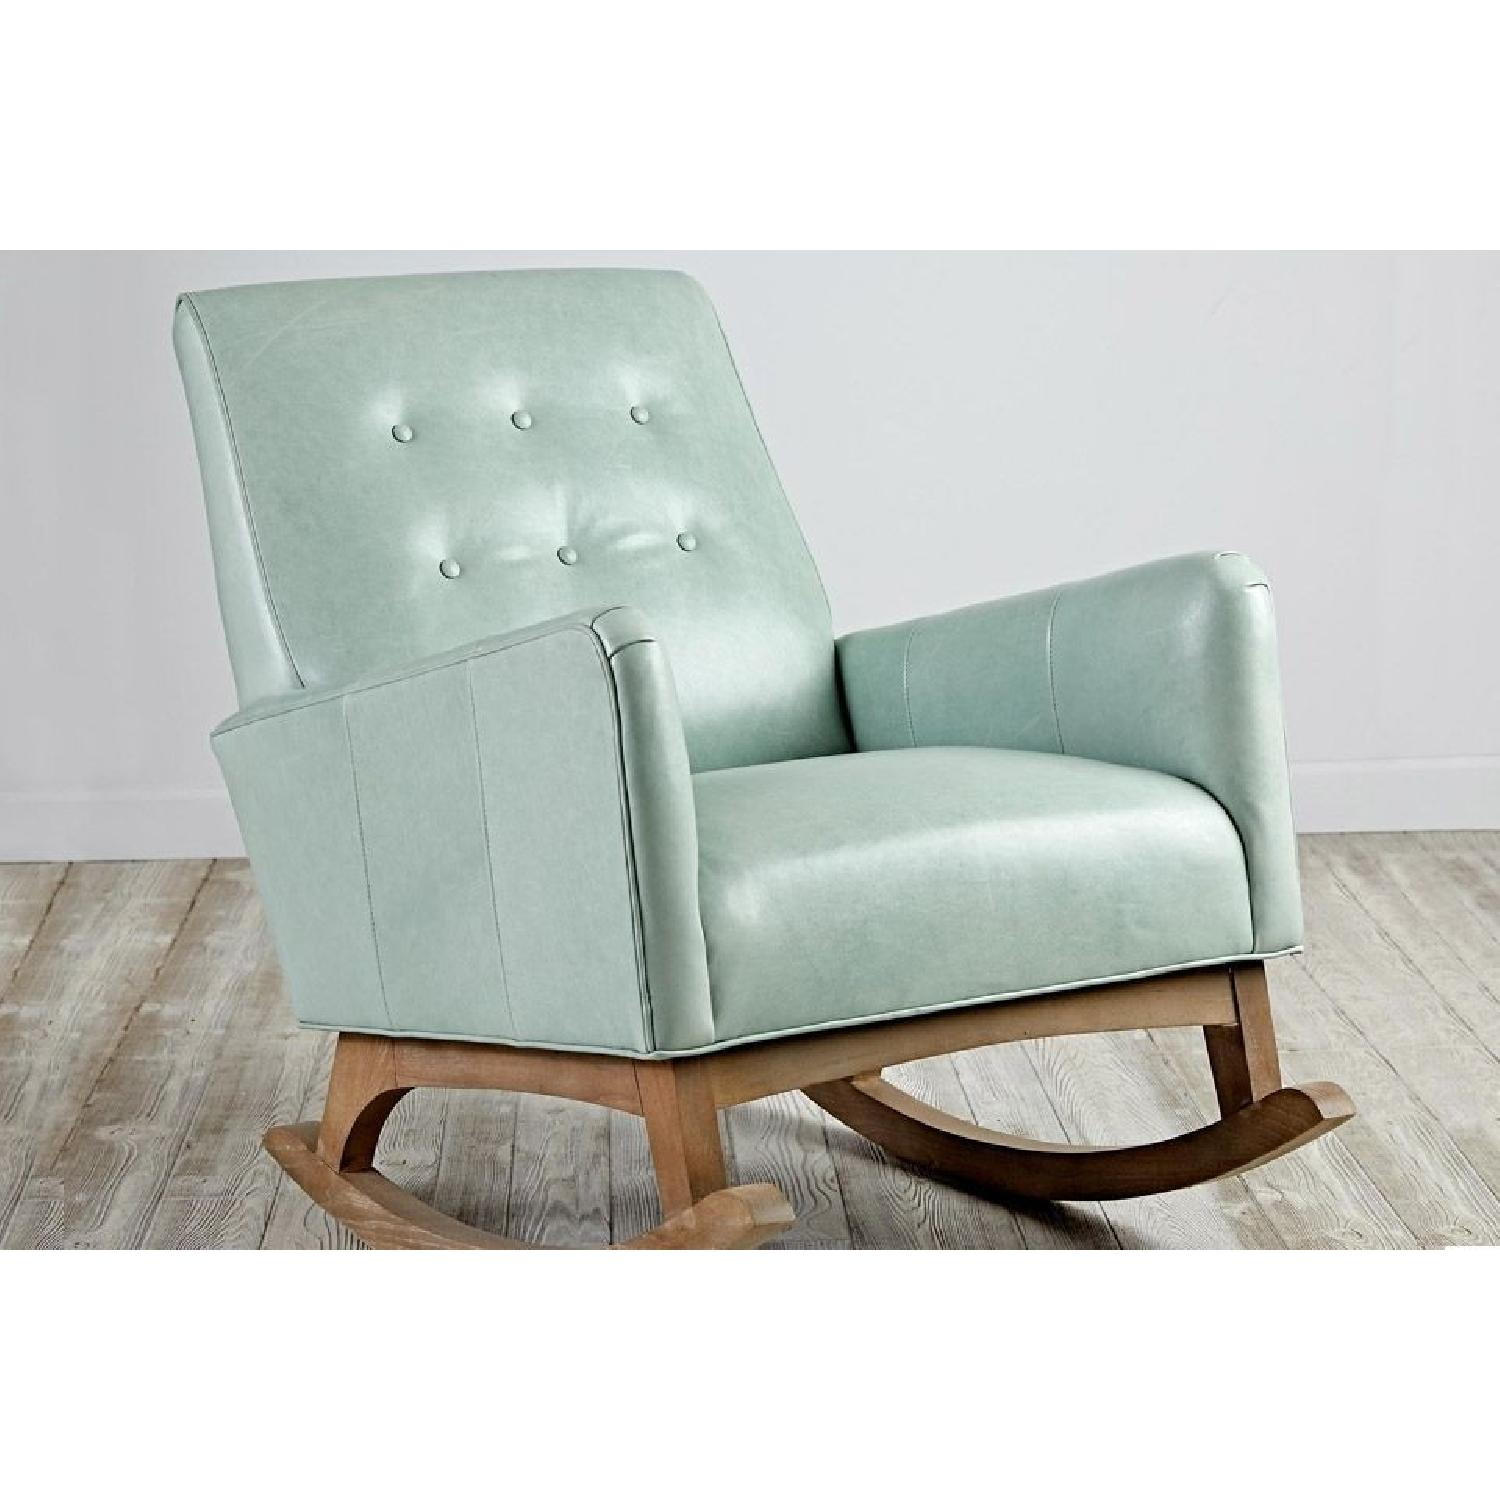 Crate & Barrel Everly Sage Leather Rocking Chair - image-1